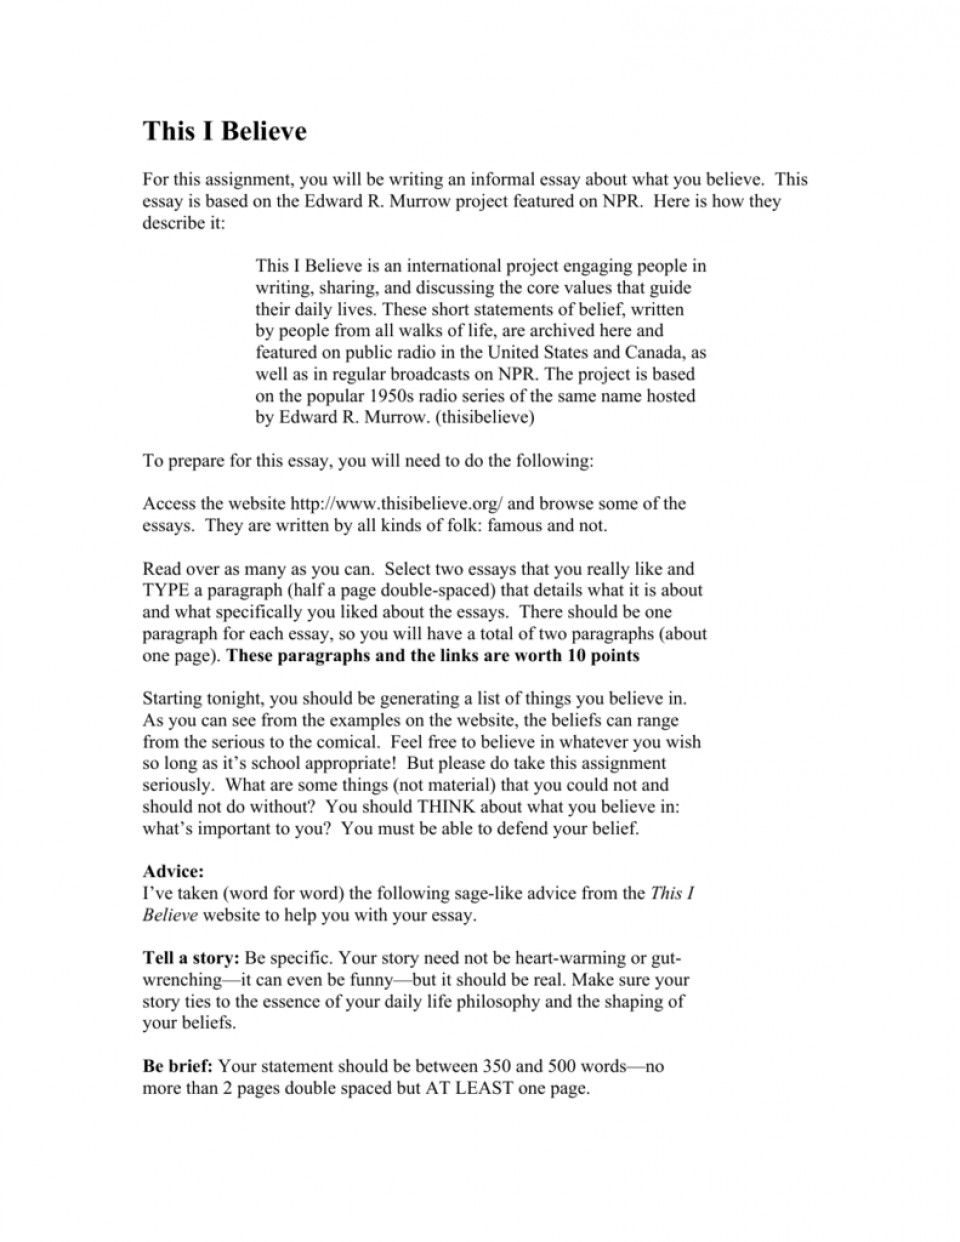 009 Essay Example 008807220 1 I Belive Surprising Essays Believe About Sports Ideas 960